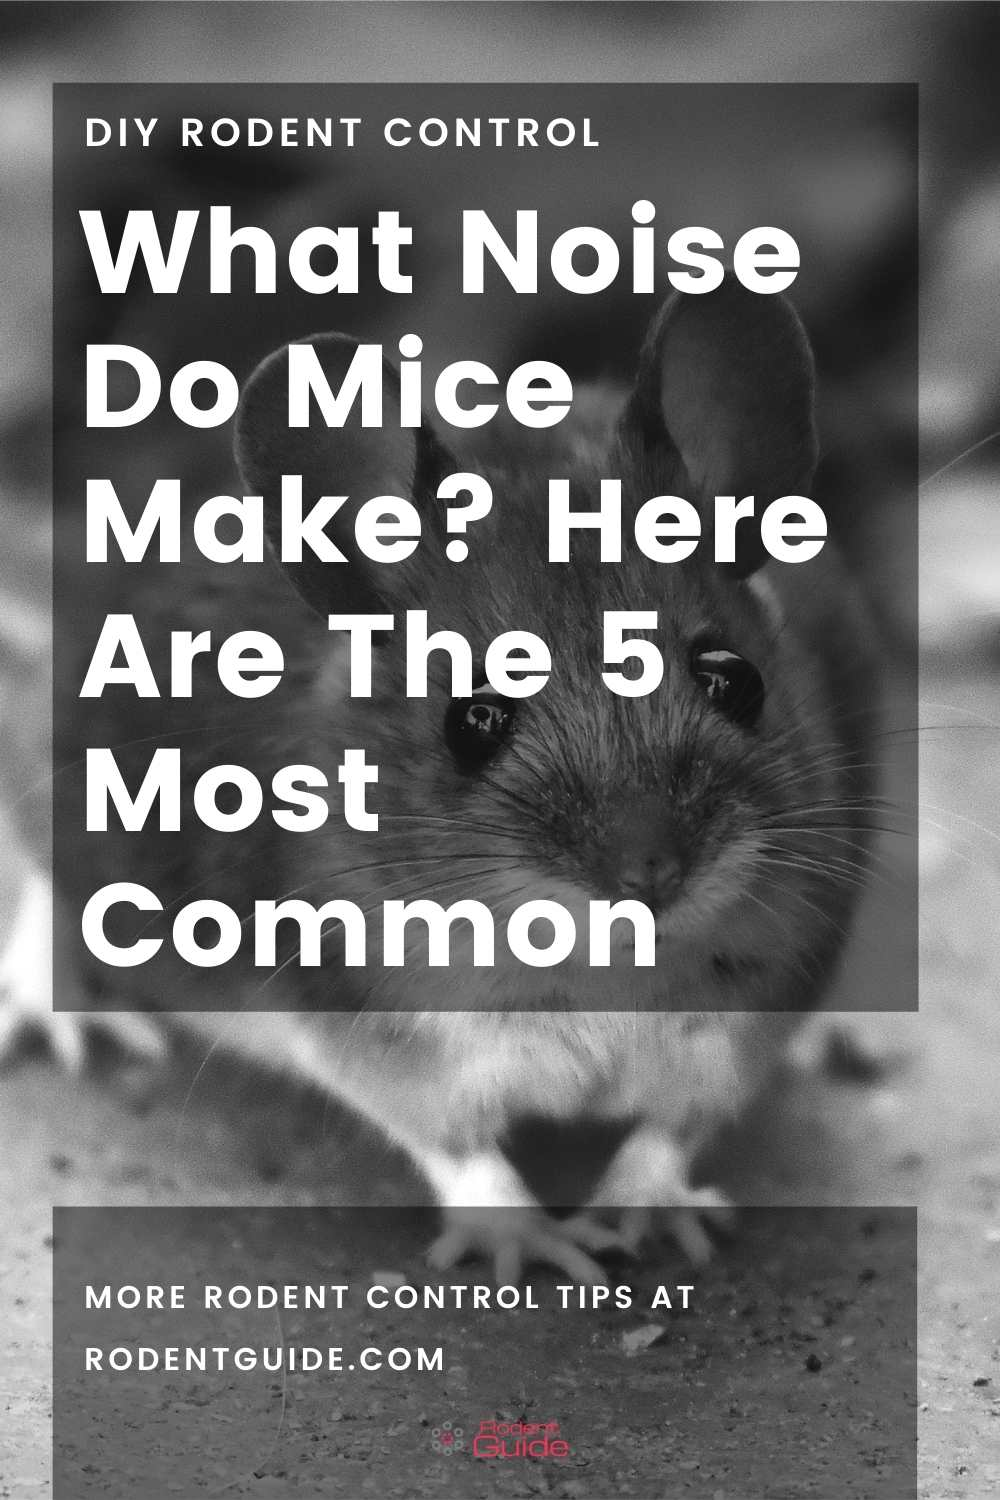 What Noise Do Mice Make_ Here Are The 5 Most Common